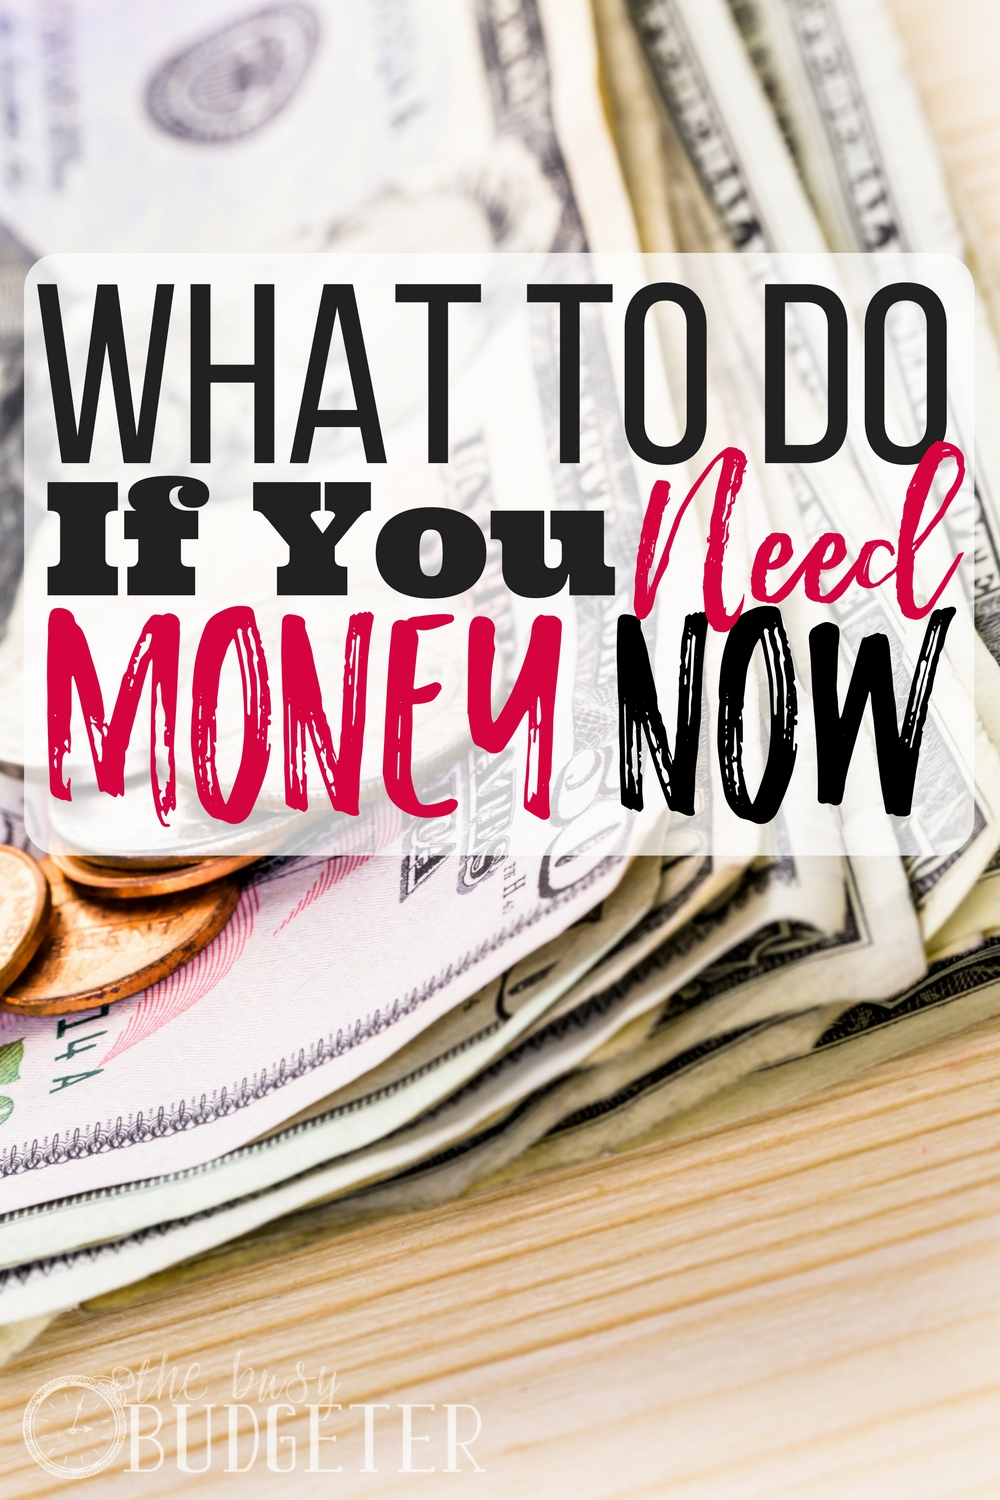 What to do if you need money now. We were already over budget when my youngest ended up in the emergency room with a $2,000 bill. We needed to make money fast and this was perfect! I am already doing 3 of these things and I am up to $500!